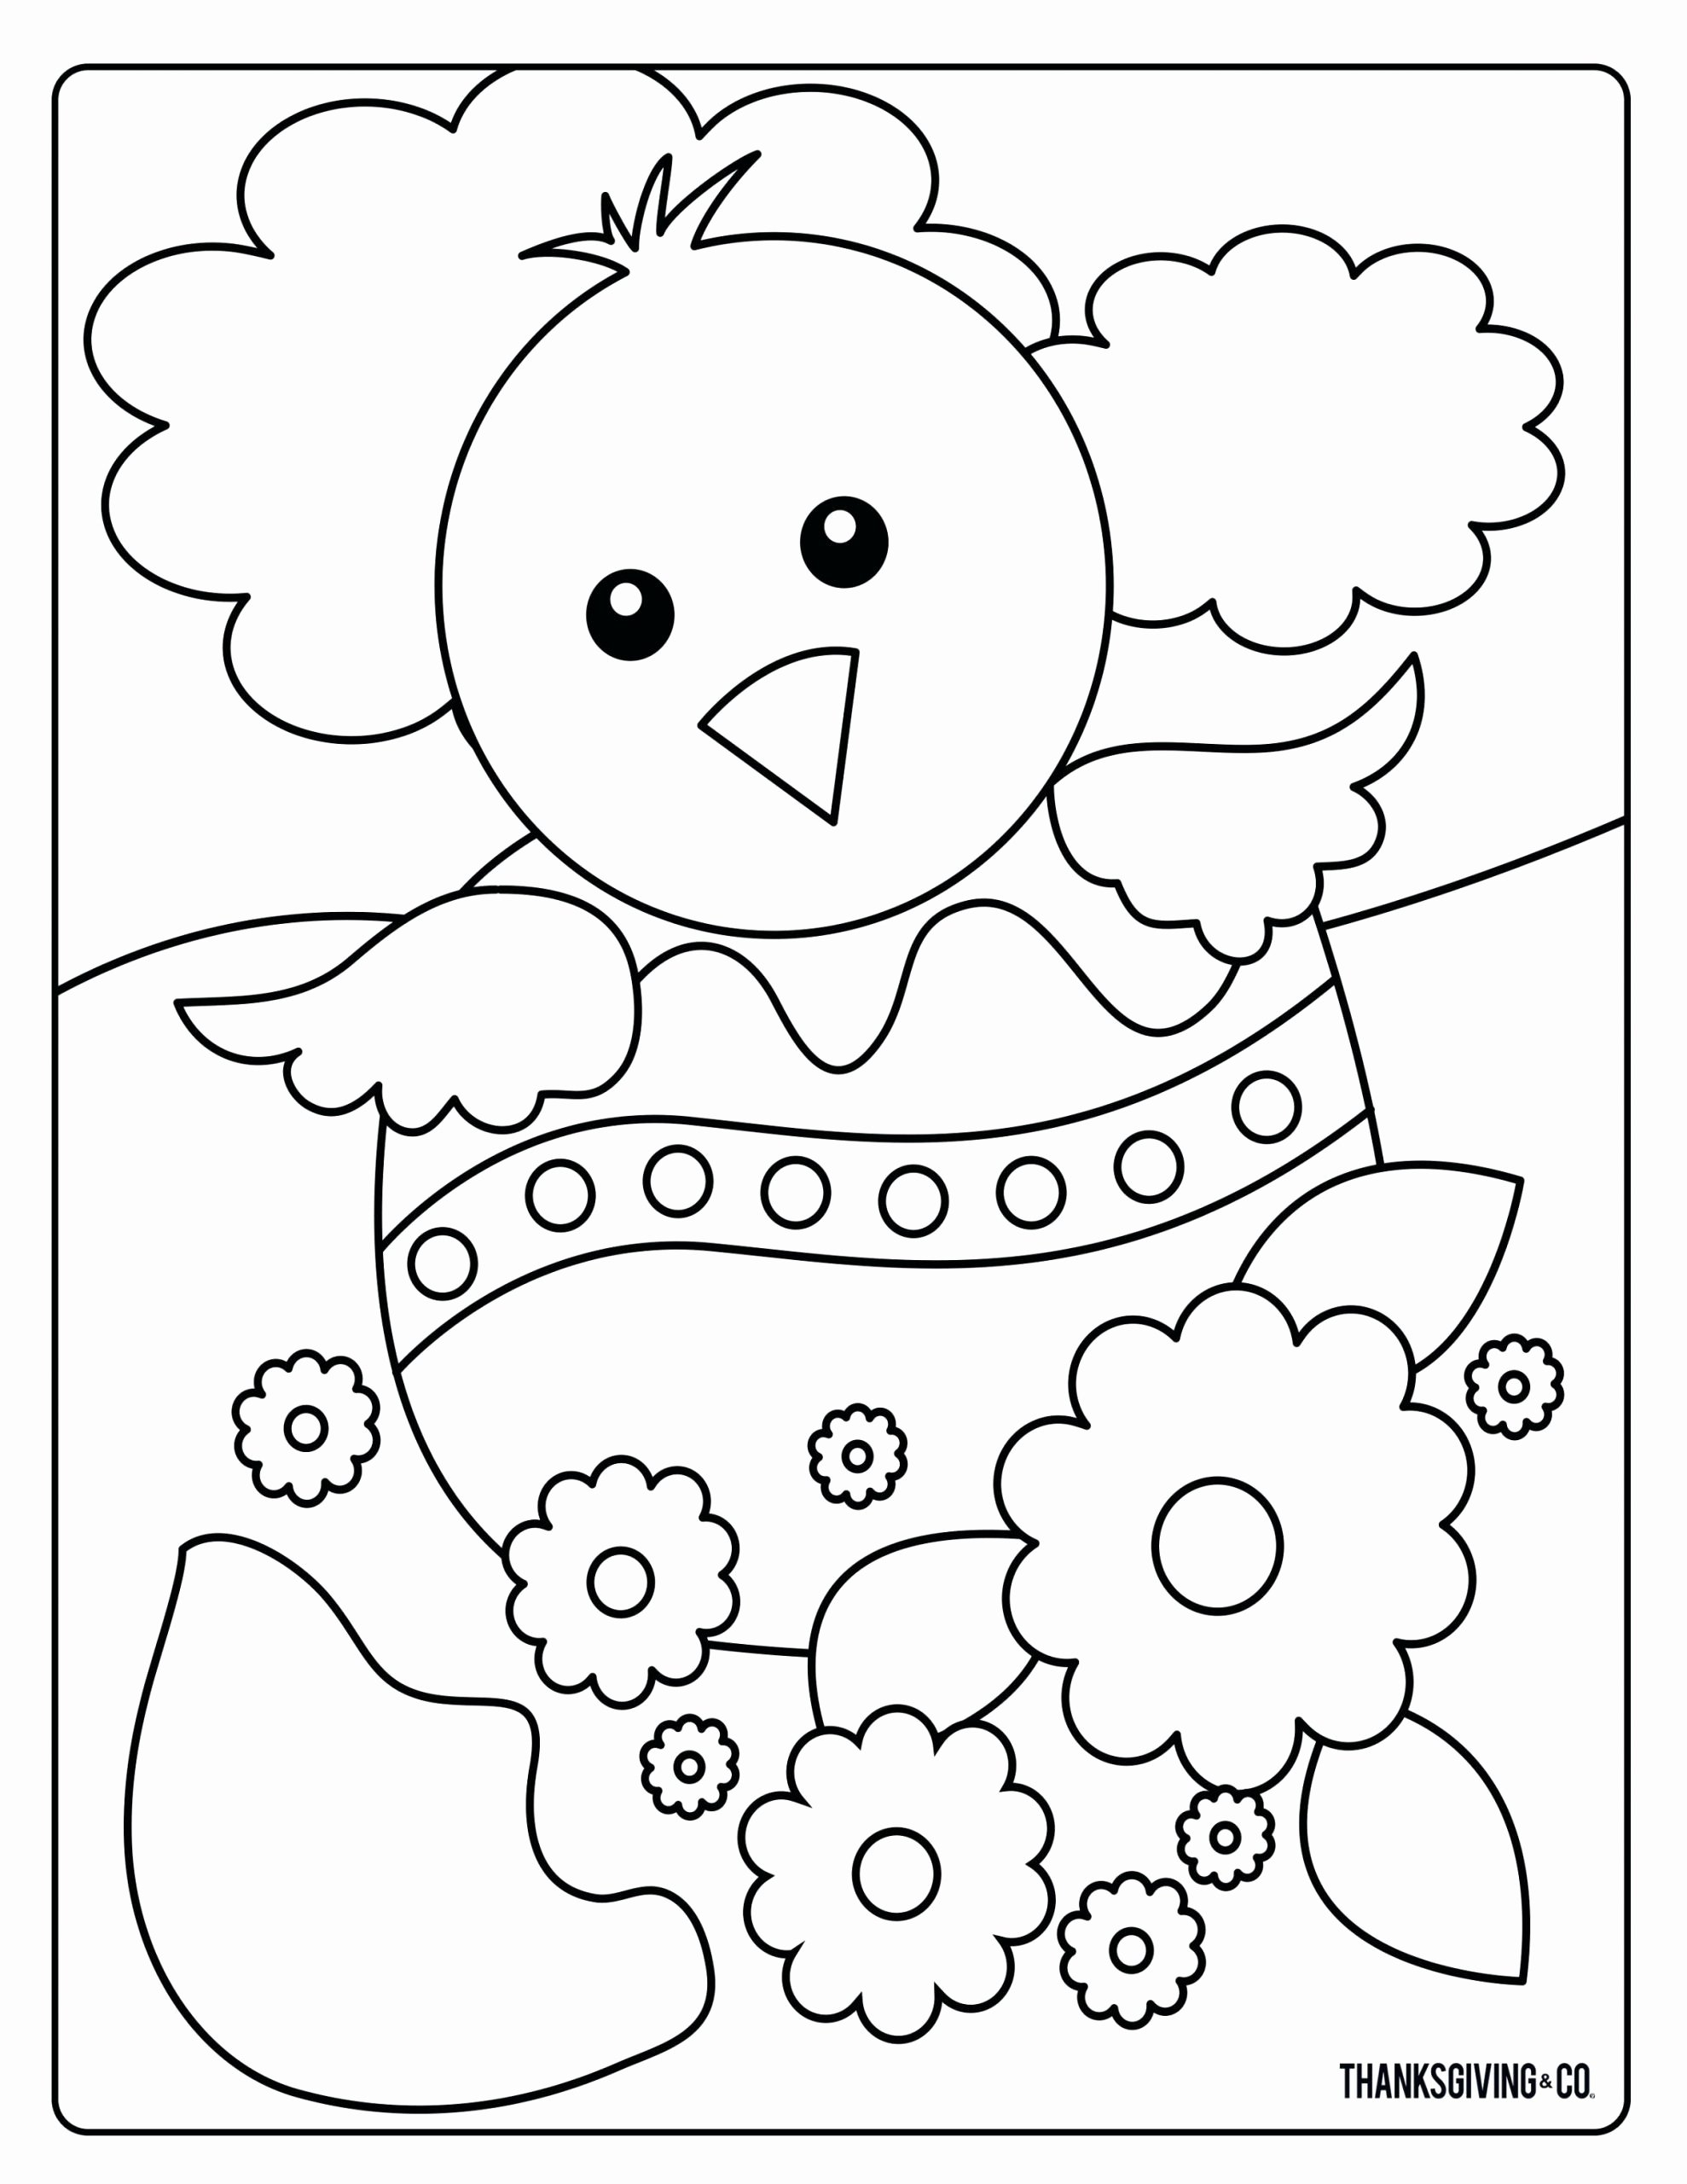 Drawing Worksheets for Preschoolers New Worksheets Color Purple Worksheets for Preschool Worksheet